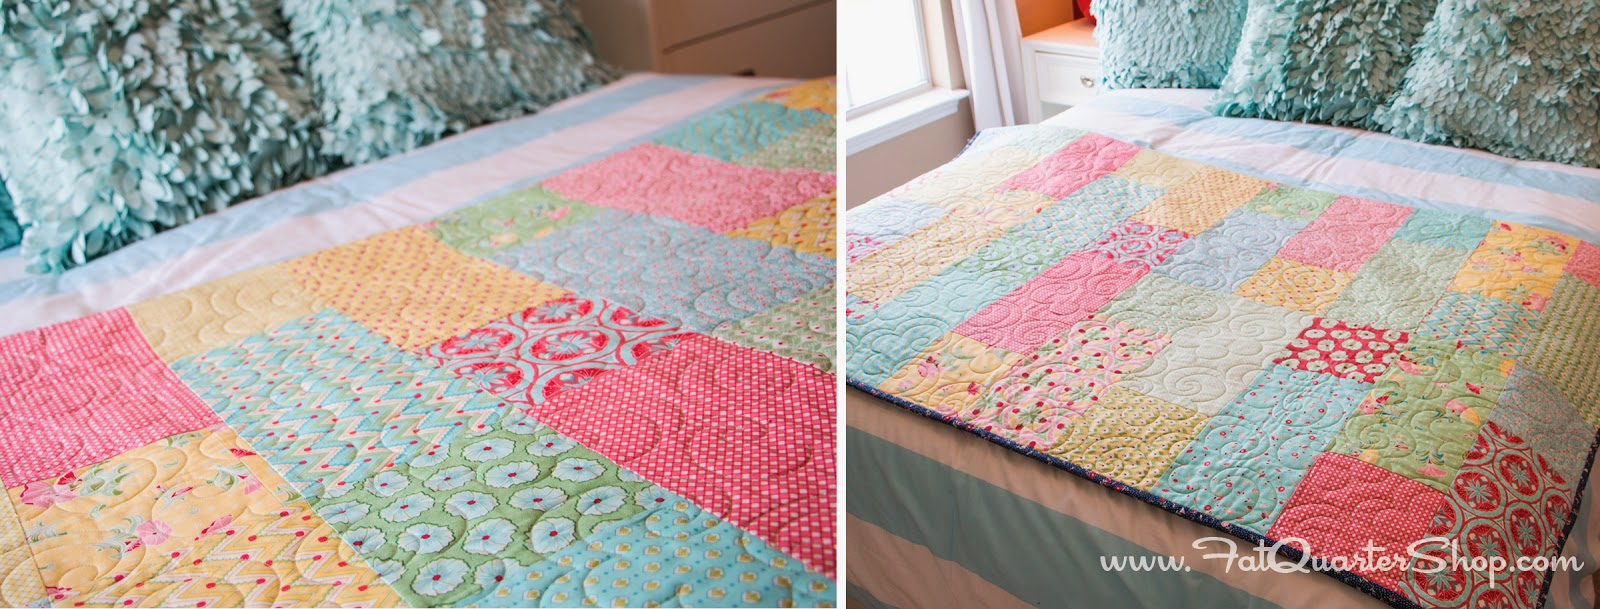 Fat Quarter Fizz: Free Quilt Pattern with Fat Quarter Shop - The ... : easy quilt patterns using fat quarters - Adamdwight.com